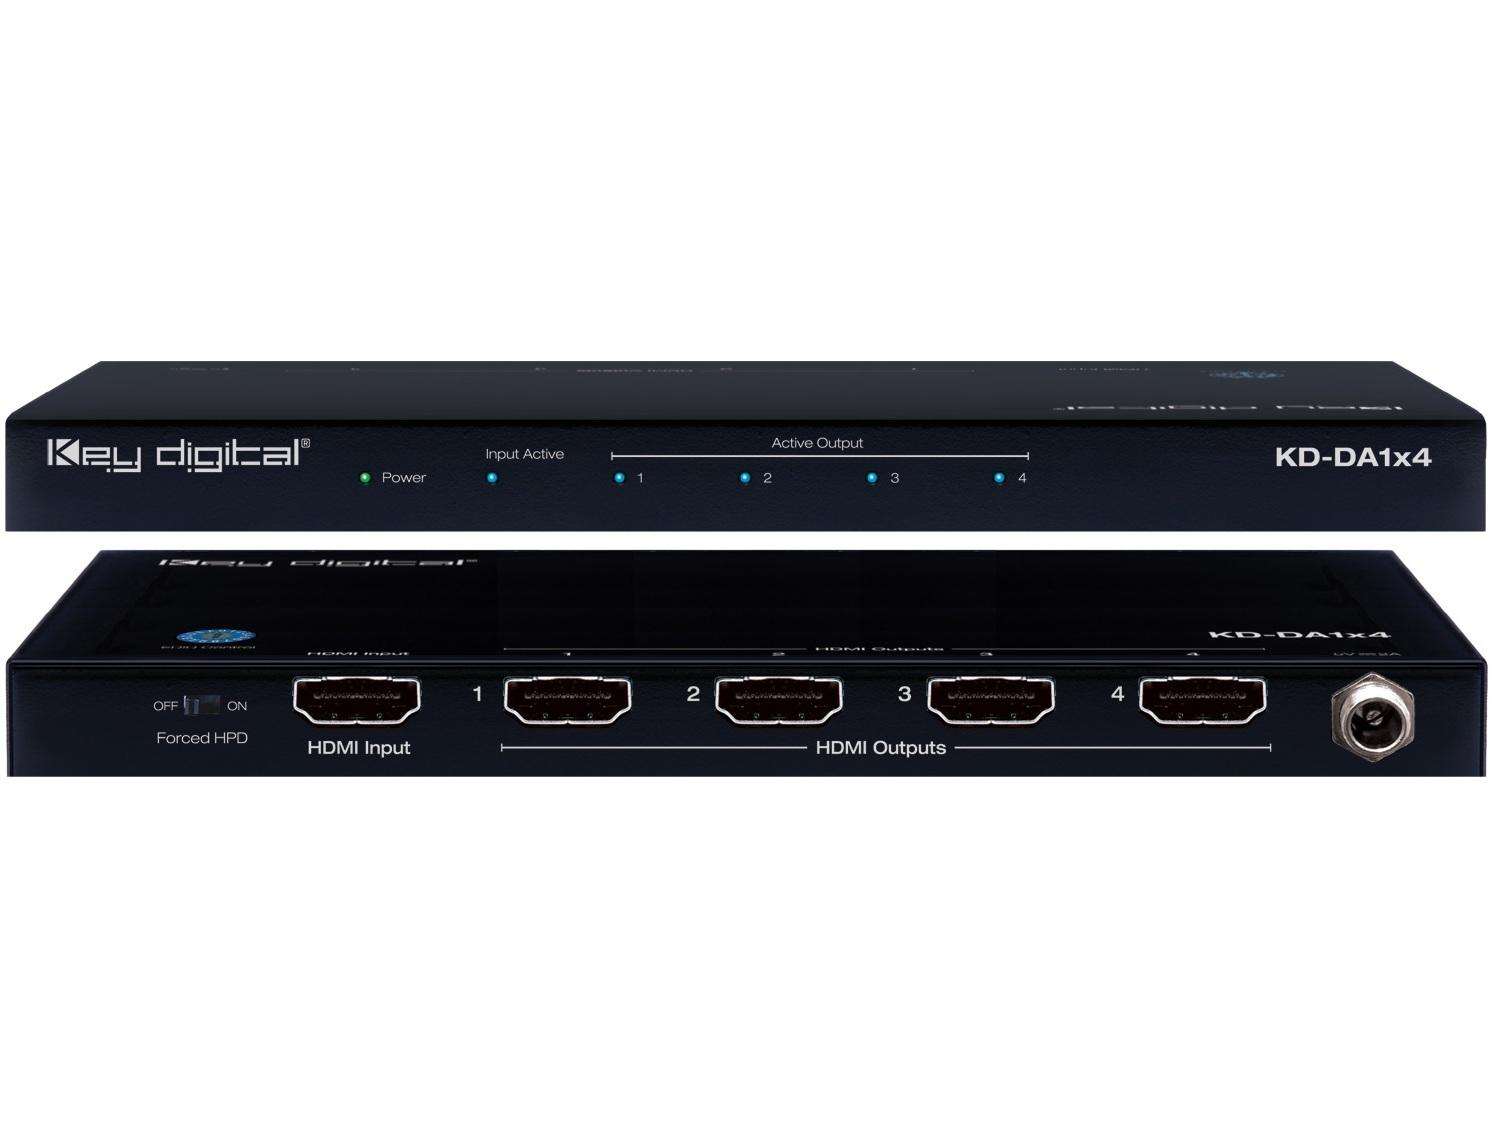 KD-DA1x4-b 1x4 HDMI Distribution Amplifier w HDCP 2.2/ Ultra HD/4K by Key Digital